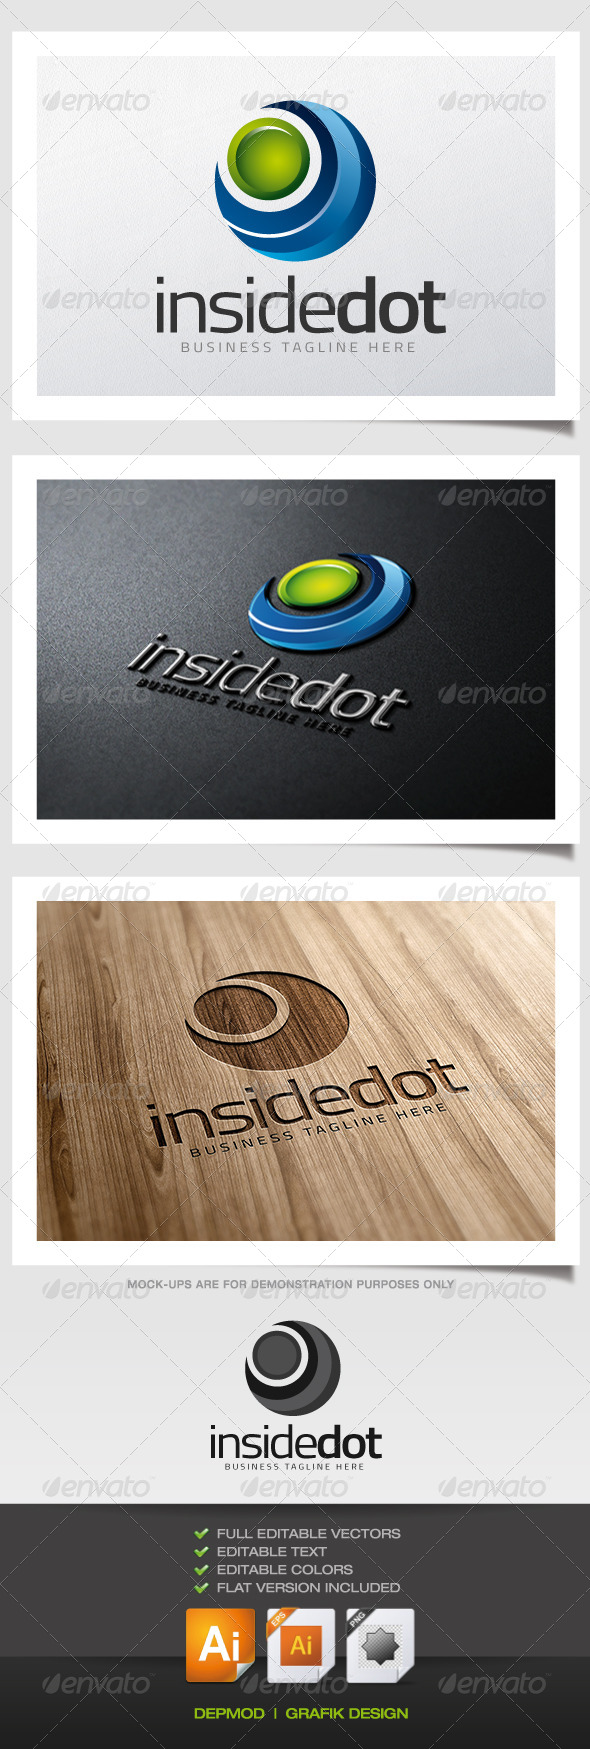 Inside Dot logo - Abstract Logo Templates